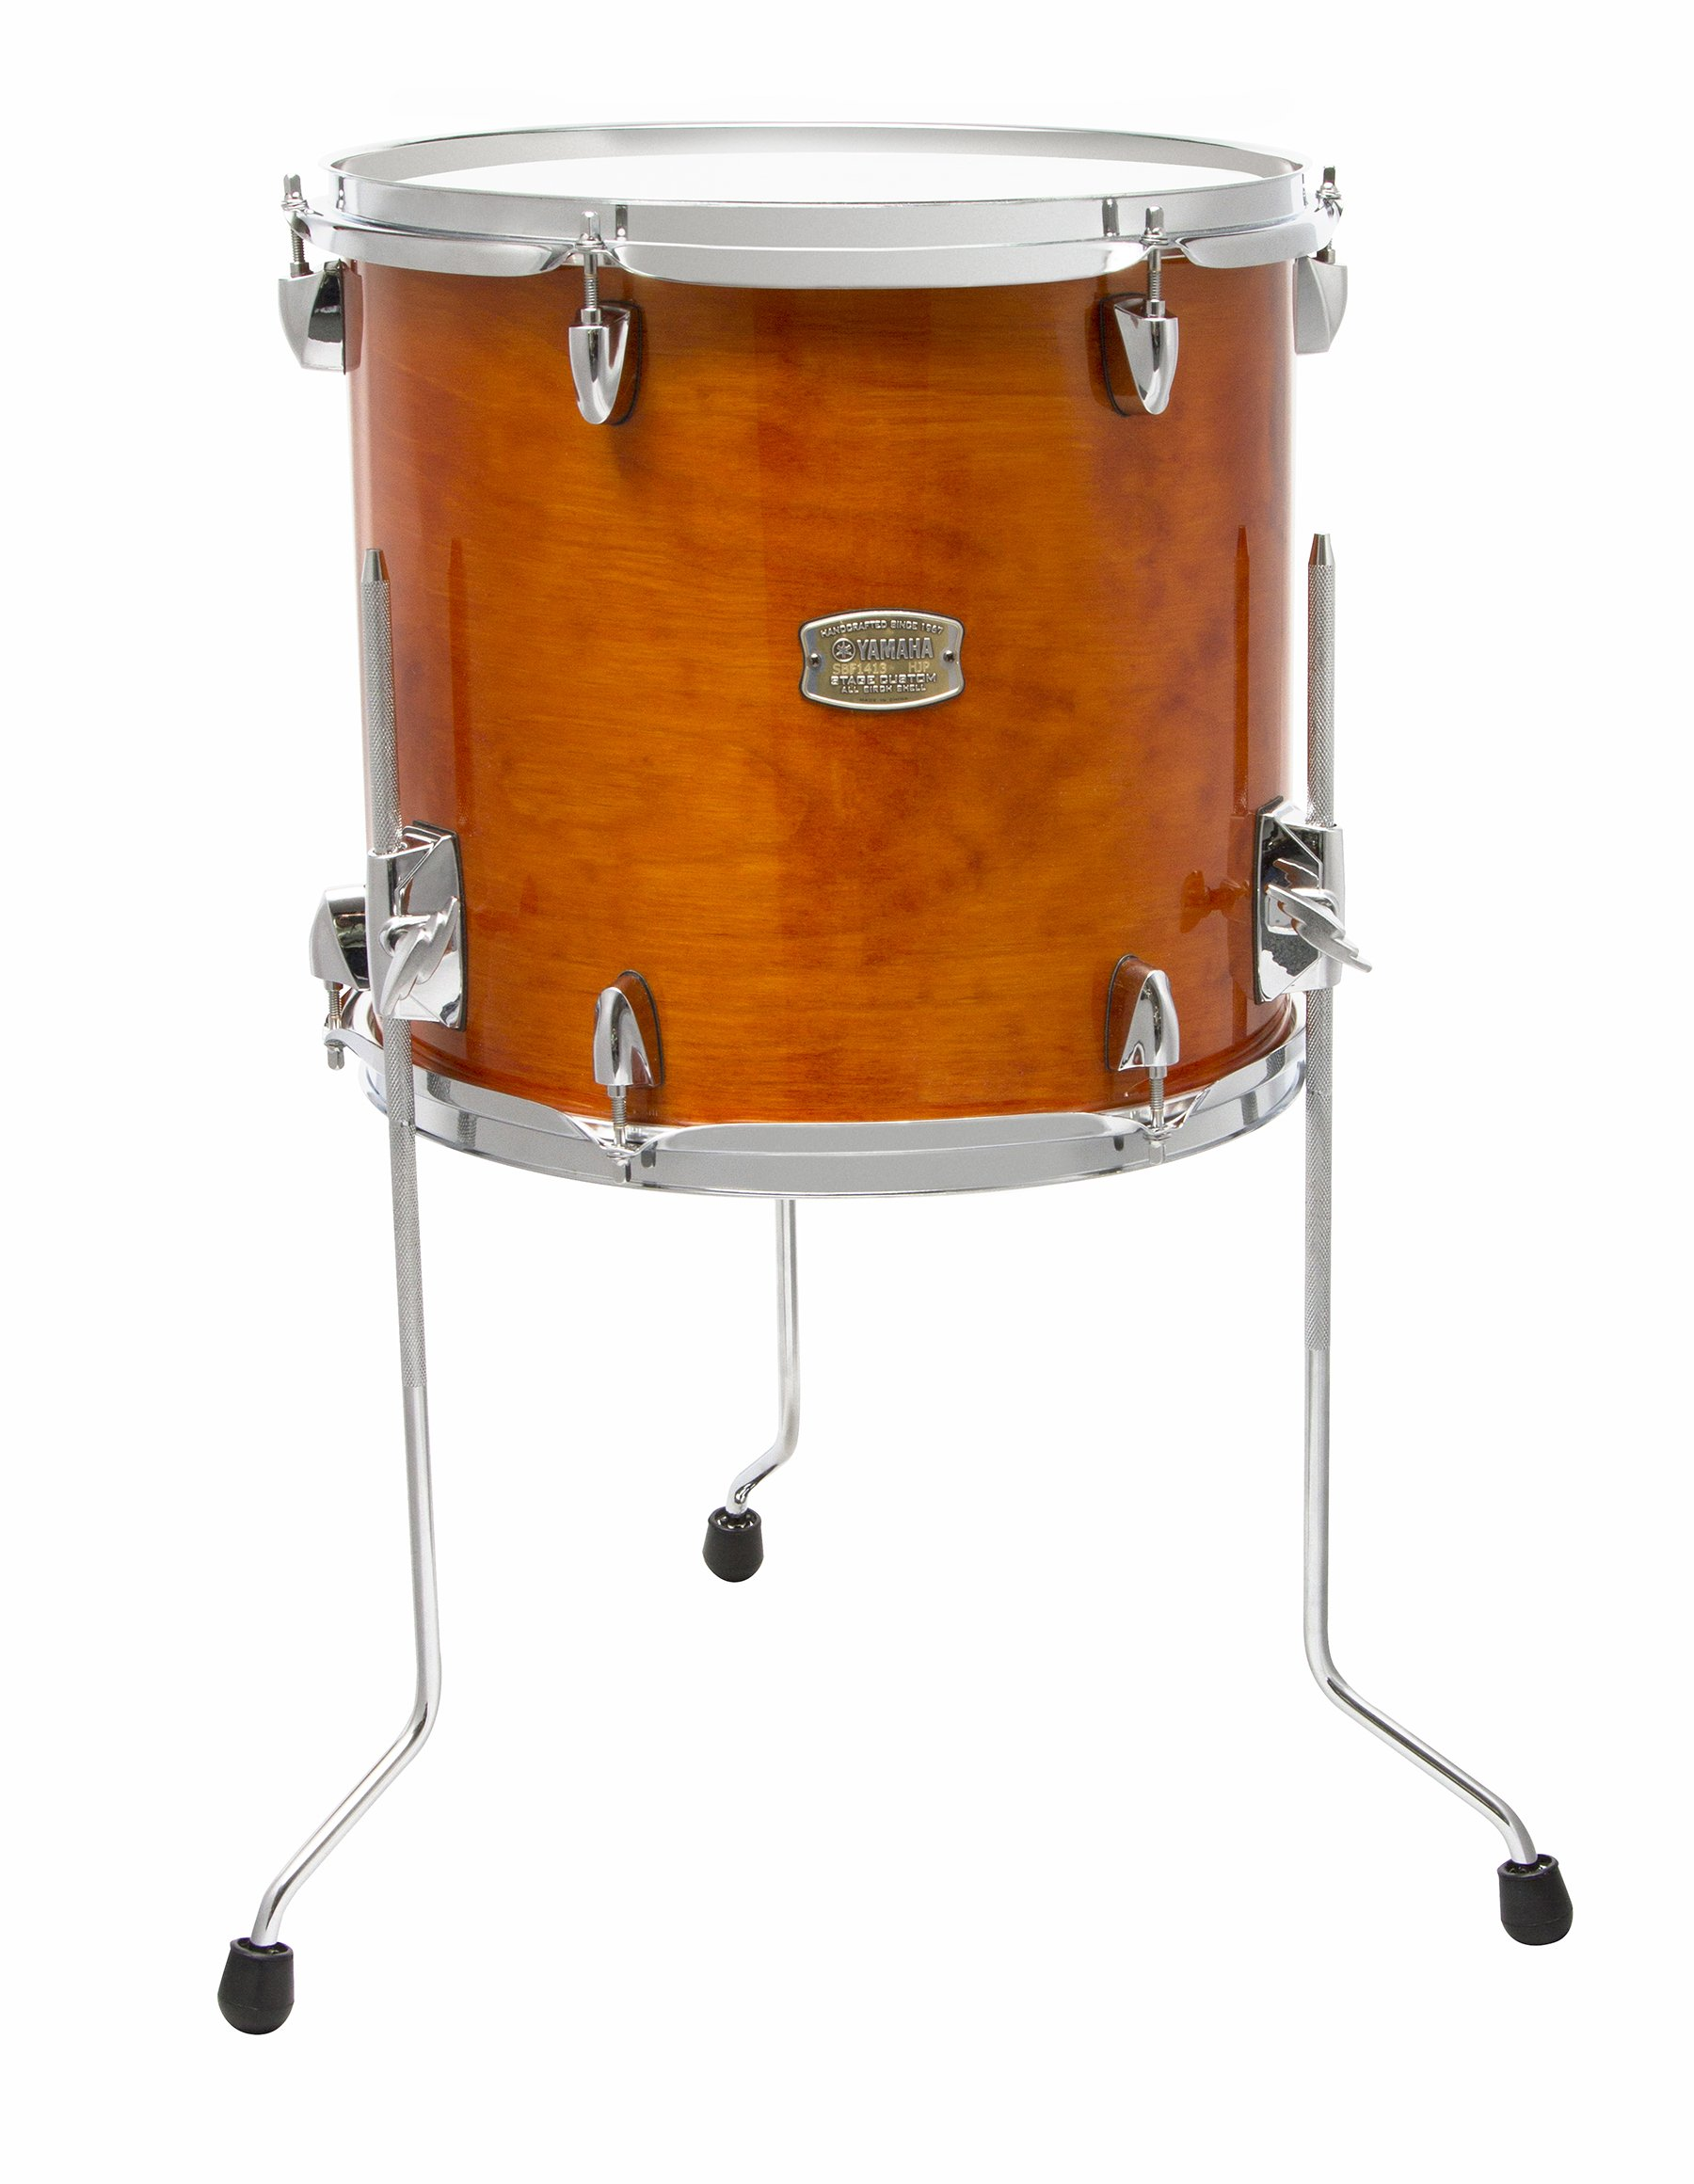 Yamaha Stage Custom Birch 18x16 Floor Tom, Honey Amber by Yamaha PAC